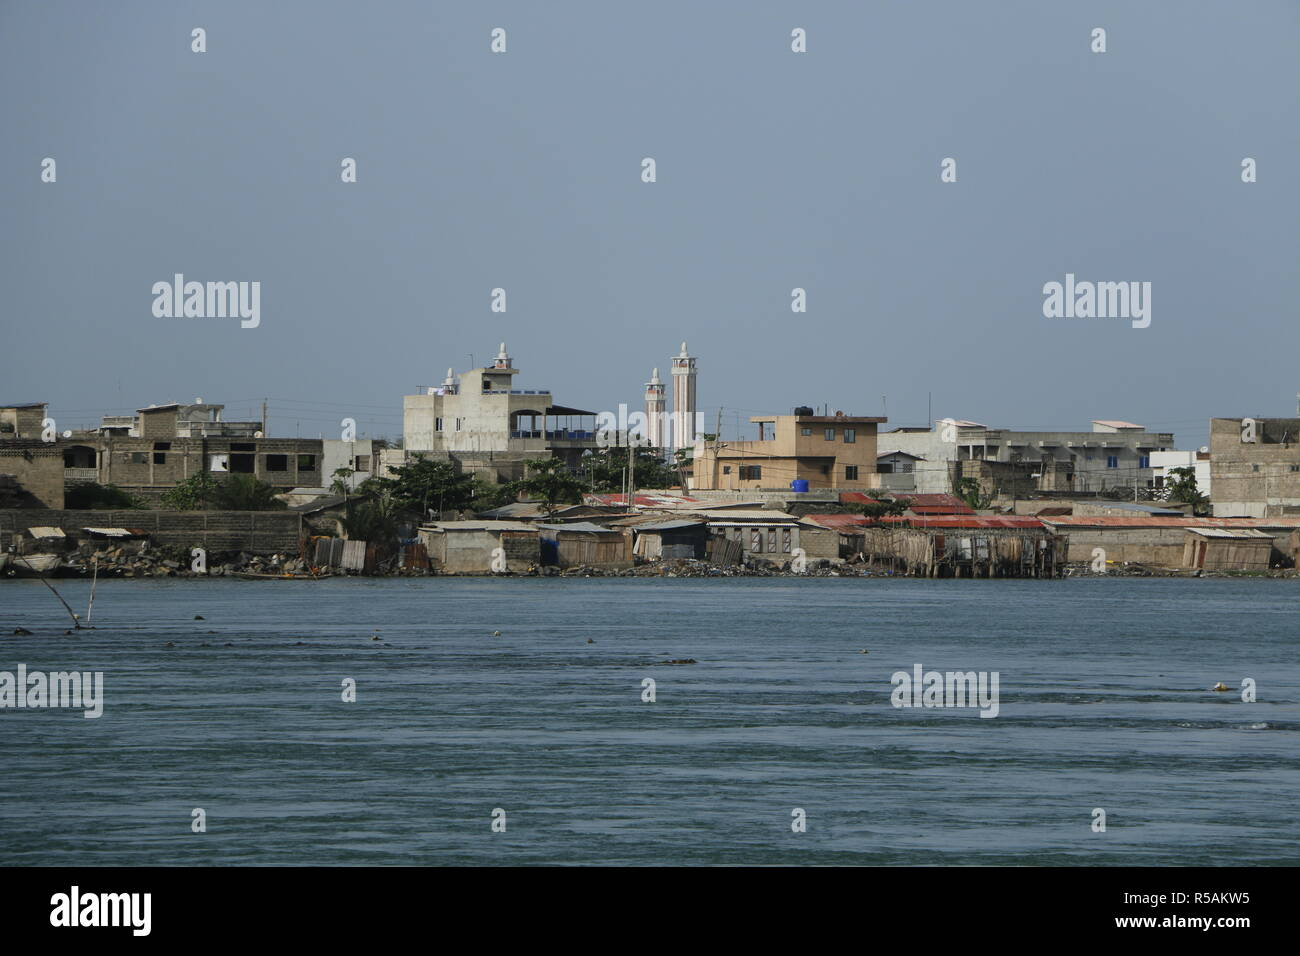 Lagune de Cotonou, a little river from lake Nokoue to the Ocean. Many activities at the water, fishermen, boats - Stock Image